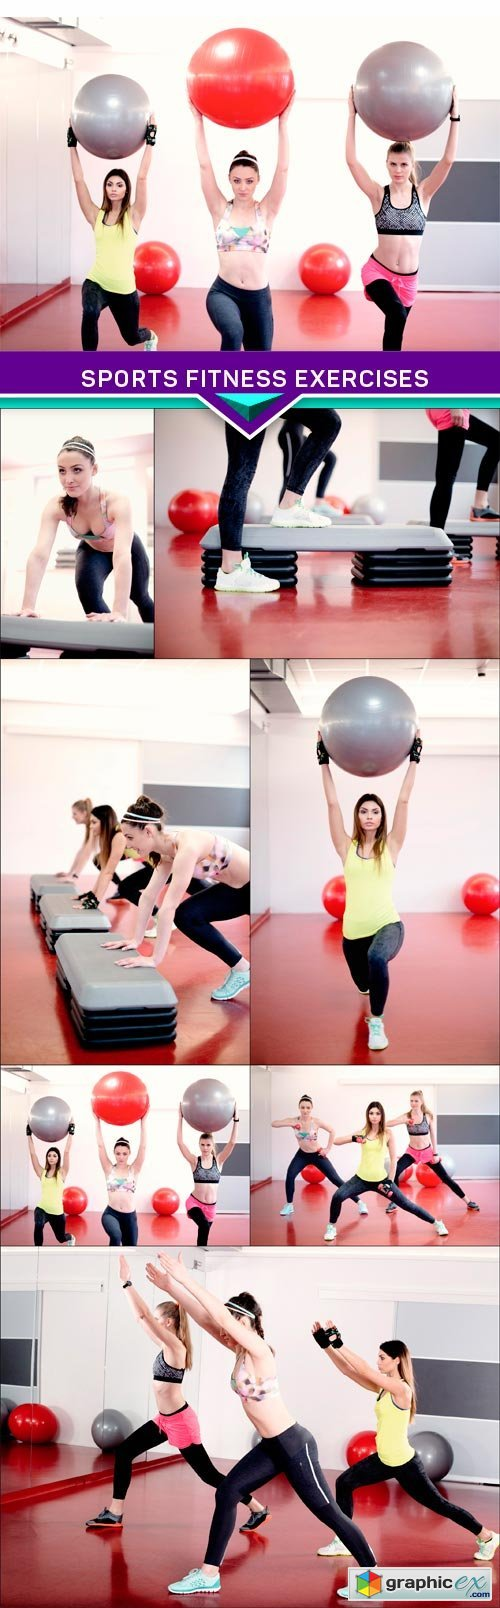 Sports Fitness Exercises 7X JPEG